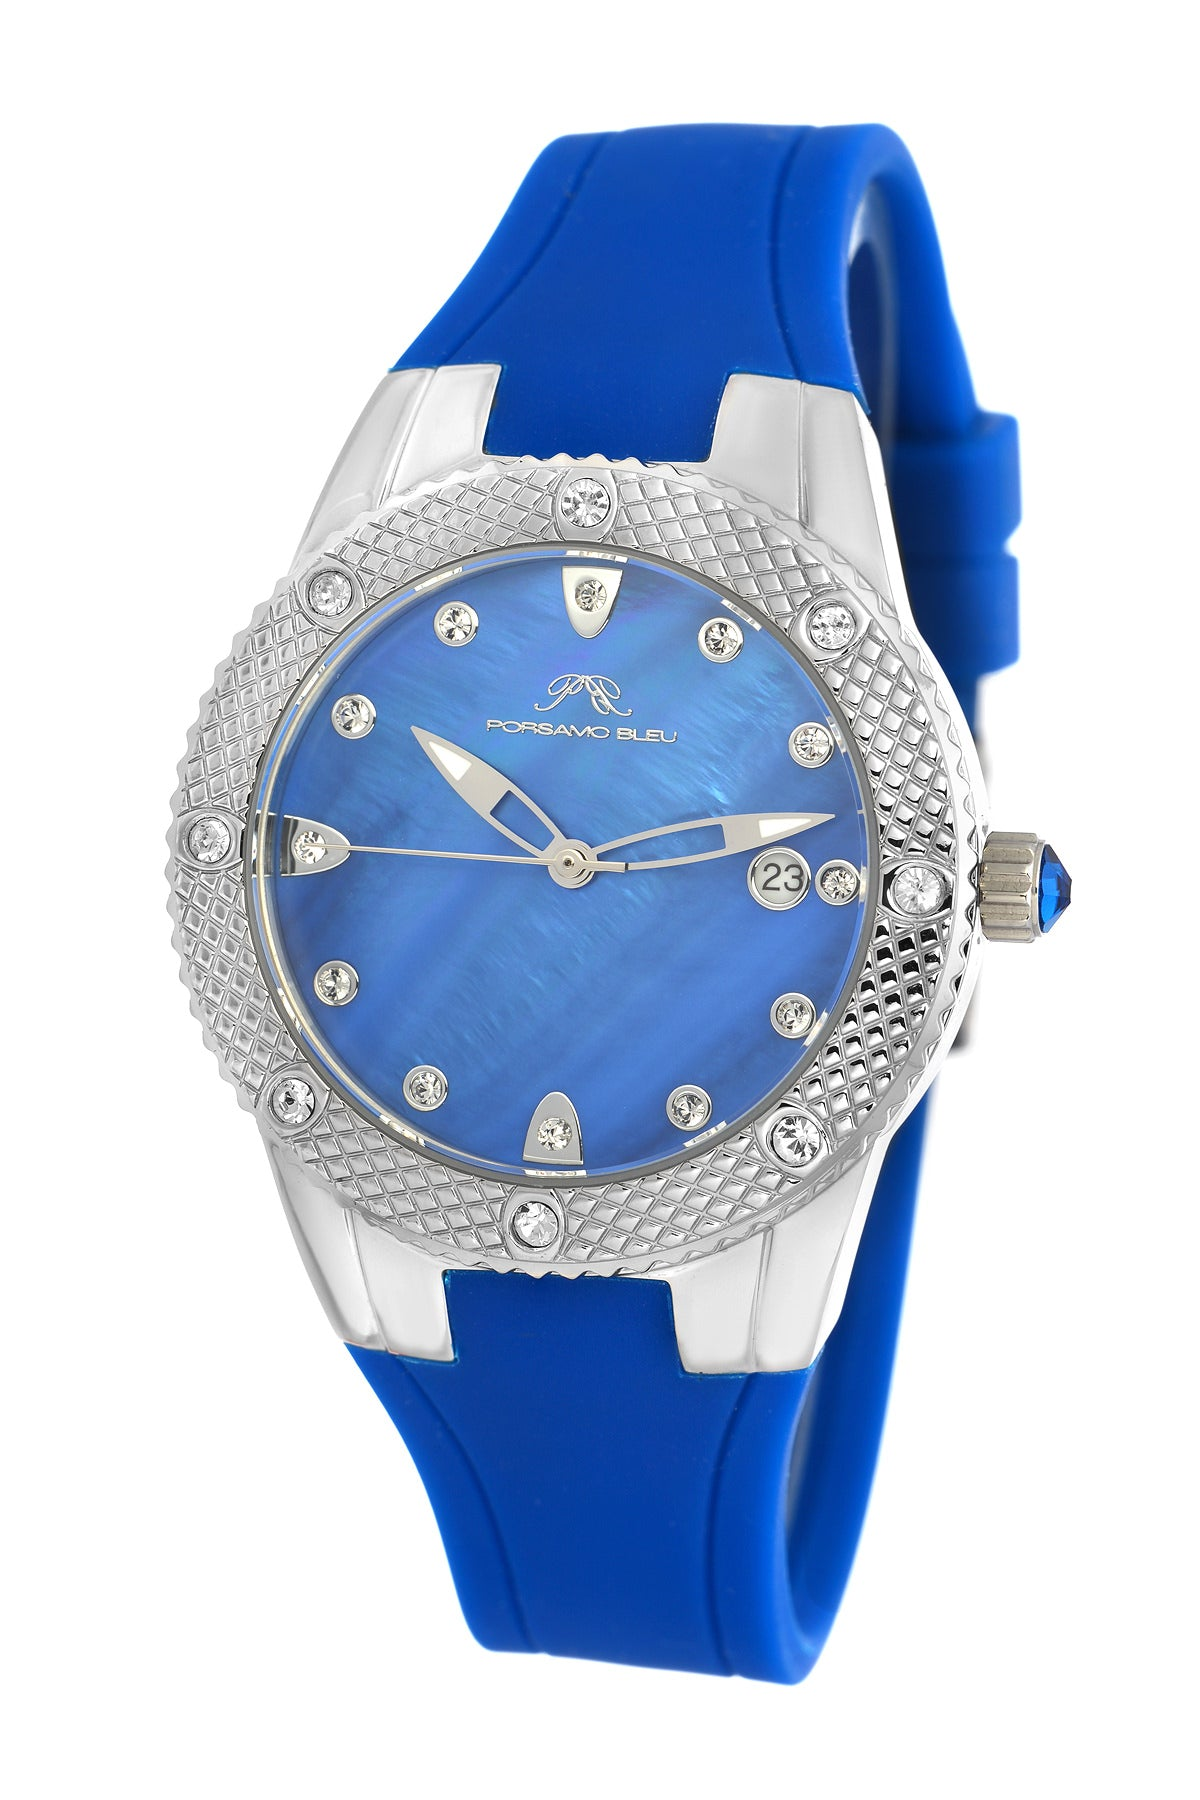 Porsamo Bleu Linda luxury women's watch, silicone strap, silver, blue 492ALIR